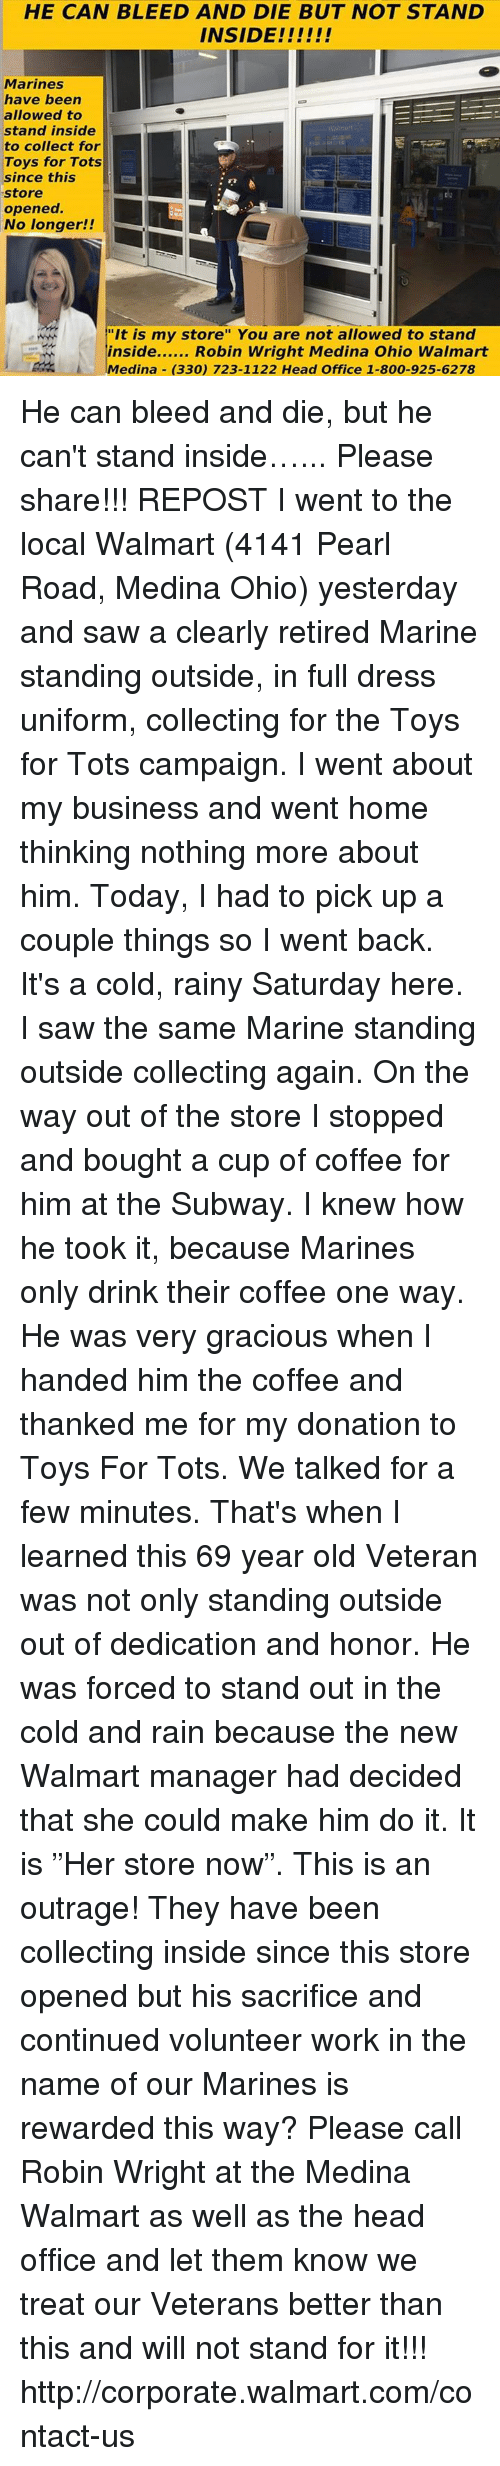 """This Is An Outrage: HE CAN BLEED AND DIE BUT NOT STAND  Marines  have been  allowed to  stand inside  to collect for  Toys for Tots  since this  store  opened.  No longer!!  """"It is my store"""" You are not allowed to stand  !inside Robin Wright Medina Ohio Walmart  \Medina- (330) 723-1122 Head Office 1-800-925-6278  .  A He can bleed and die, but he can't stand inside…... Please share!!!  REPOST  I went to the local Walmart (4141 Pearl Road, Medina Ohio) yesterday and saw a clearly retired Marine standing outside, in full dress uniform, collecting for the Toys for Tots campaign. I went about my business and went home thinking nothing more about him. Today, I had to pick up a couple things so I went back.  It's a cold, rainy Saturday here. I saw the same Marine standing outside collecting again. On the way out of the store I stopped and bought a cup of coffee for him at the Subway.  I knew how he took it, because Marines only drink their coffee one way.  He was very gracious when I handed him the coffee and thanked me for my donation to Toys For Tots. We talked for a few minutes. That's when I learned  this 69 year old Veteran was not only standing outside out of dedication and honor.  He was forced to stand out in the cold and rain because the new Walmart manager had decided that she could make him do it. It is """"Her store now"""".   This is an outrage! They have been collecting inside since this store opened but his sacrifice and continued volunteer work in the name of our Marines is rewarded this way? Please call Robin Wright at the Medina Walmart as well as the head office and let them know we treat our Veterans better than this and will not stand for it!!!    http://corporate.walmart.com/contact-us"""